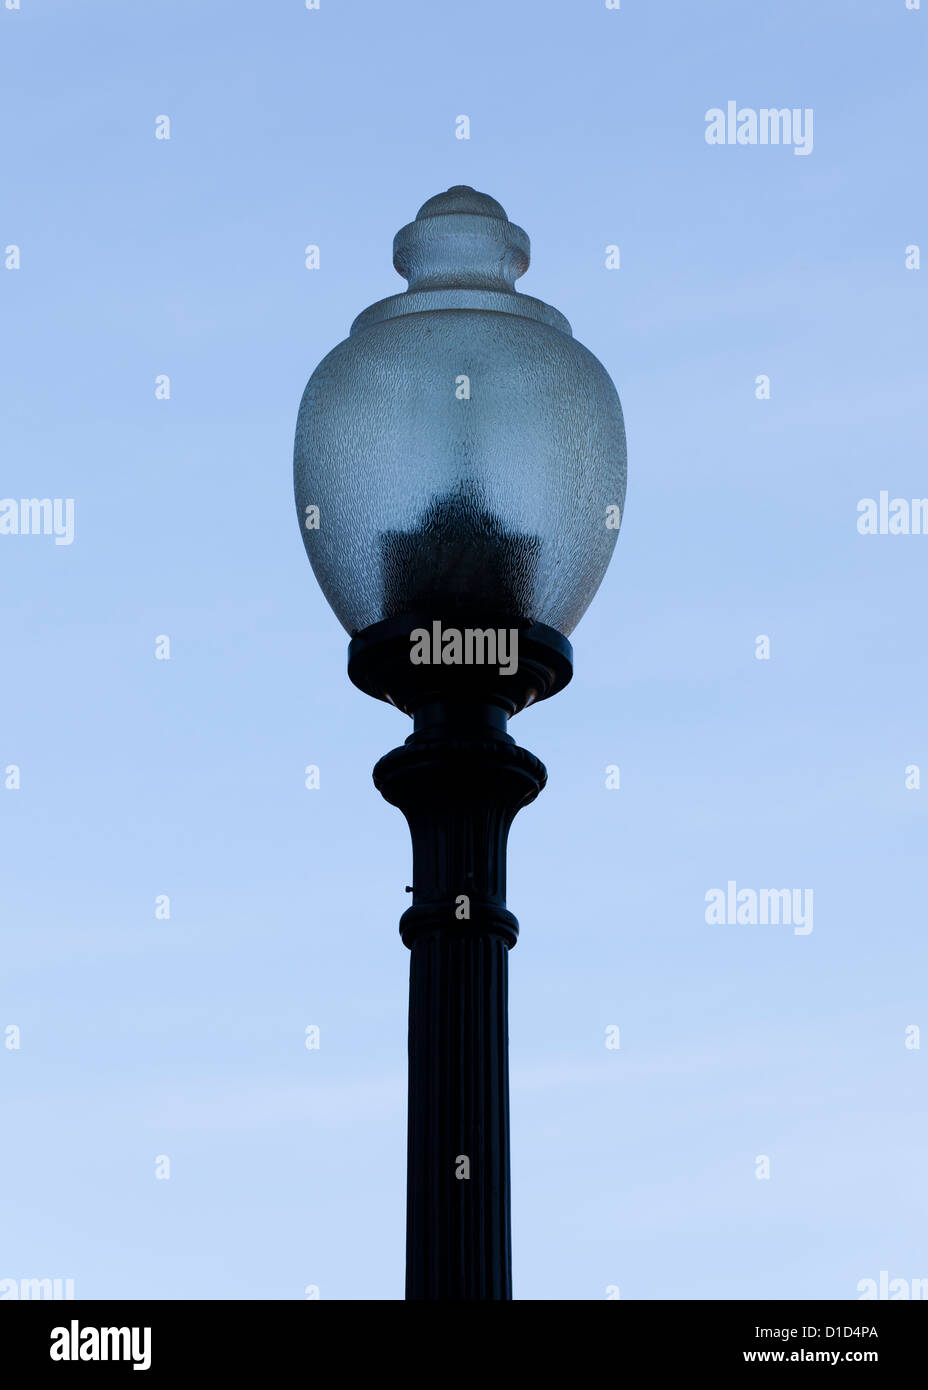 Lamp High Resolution Stock Photography And Images Alamy